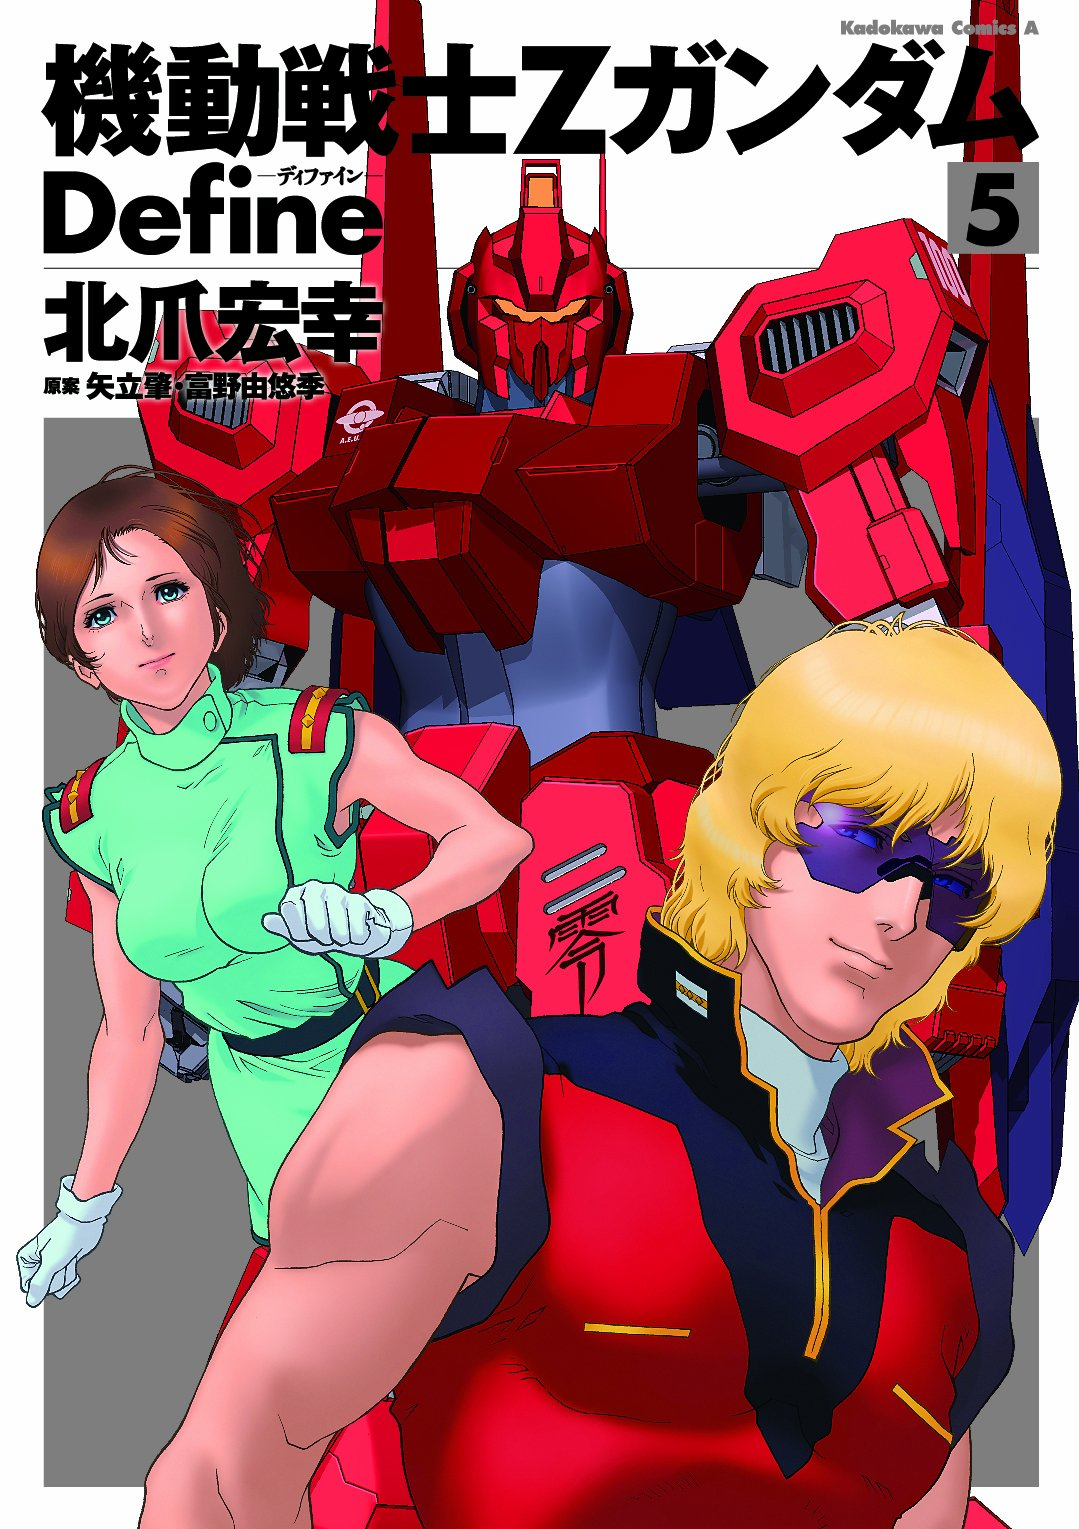 File:Mobile Suit Zeta Gundam Define Vol.5.jpg